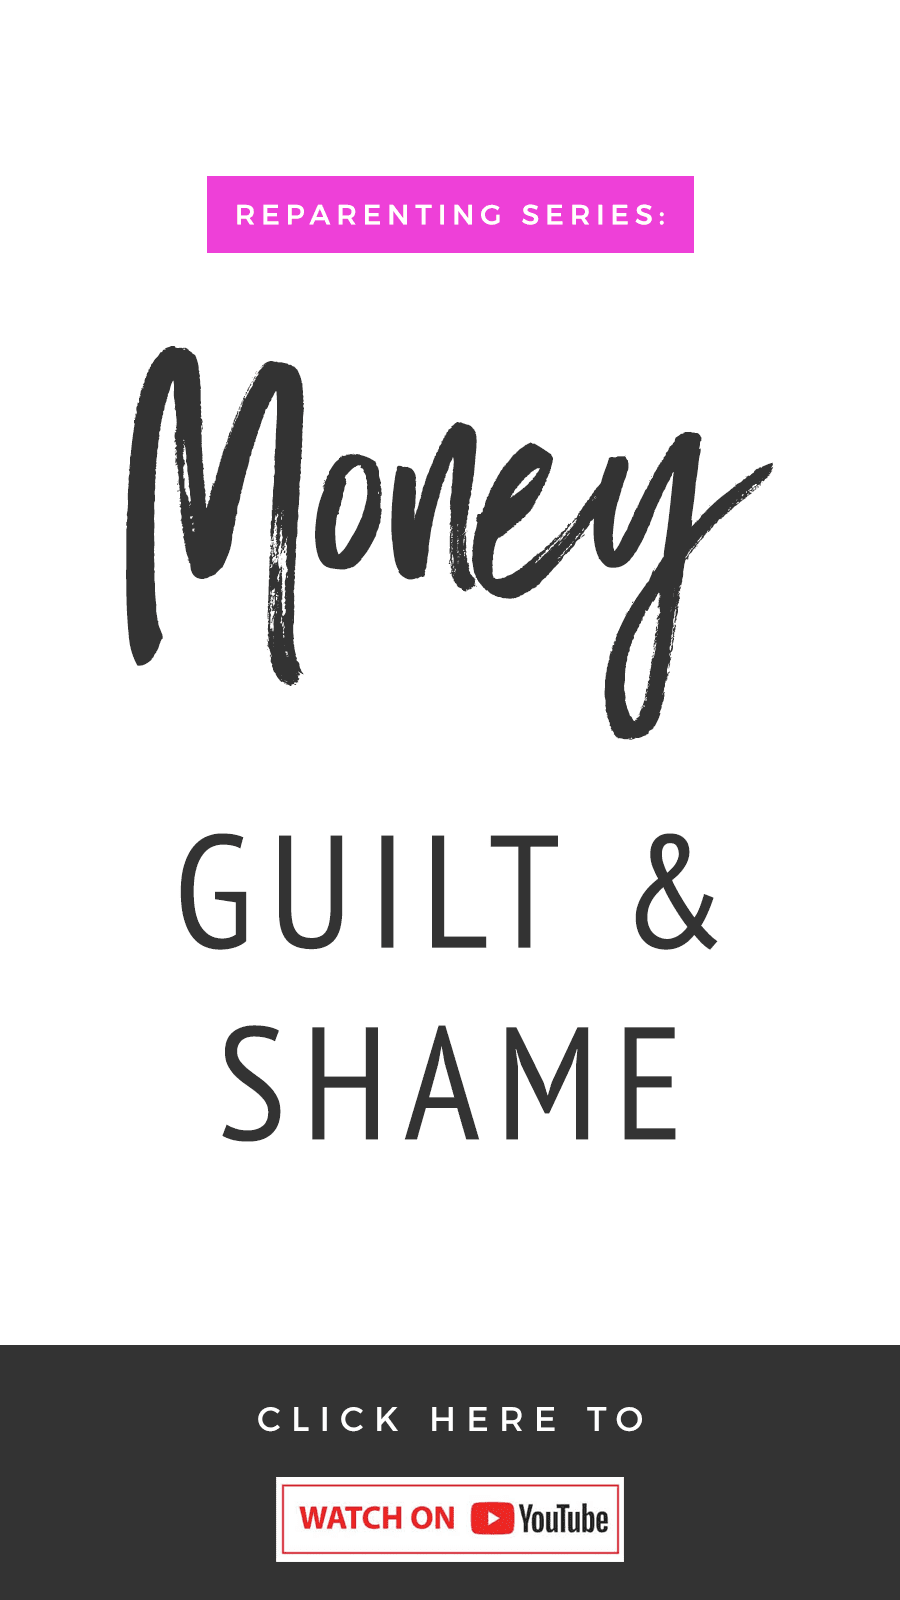 Reparenting Series: Money Shame & Guilt